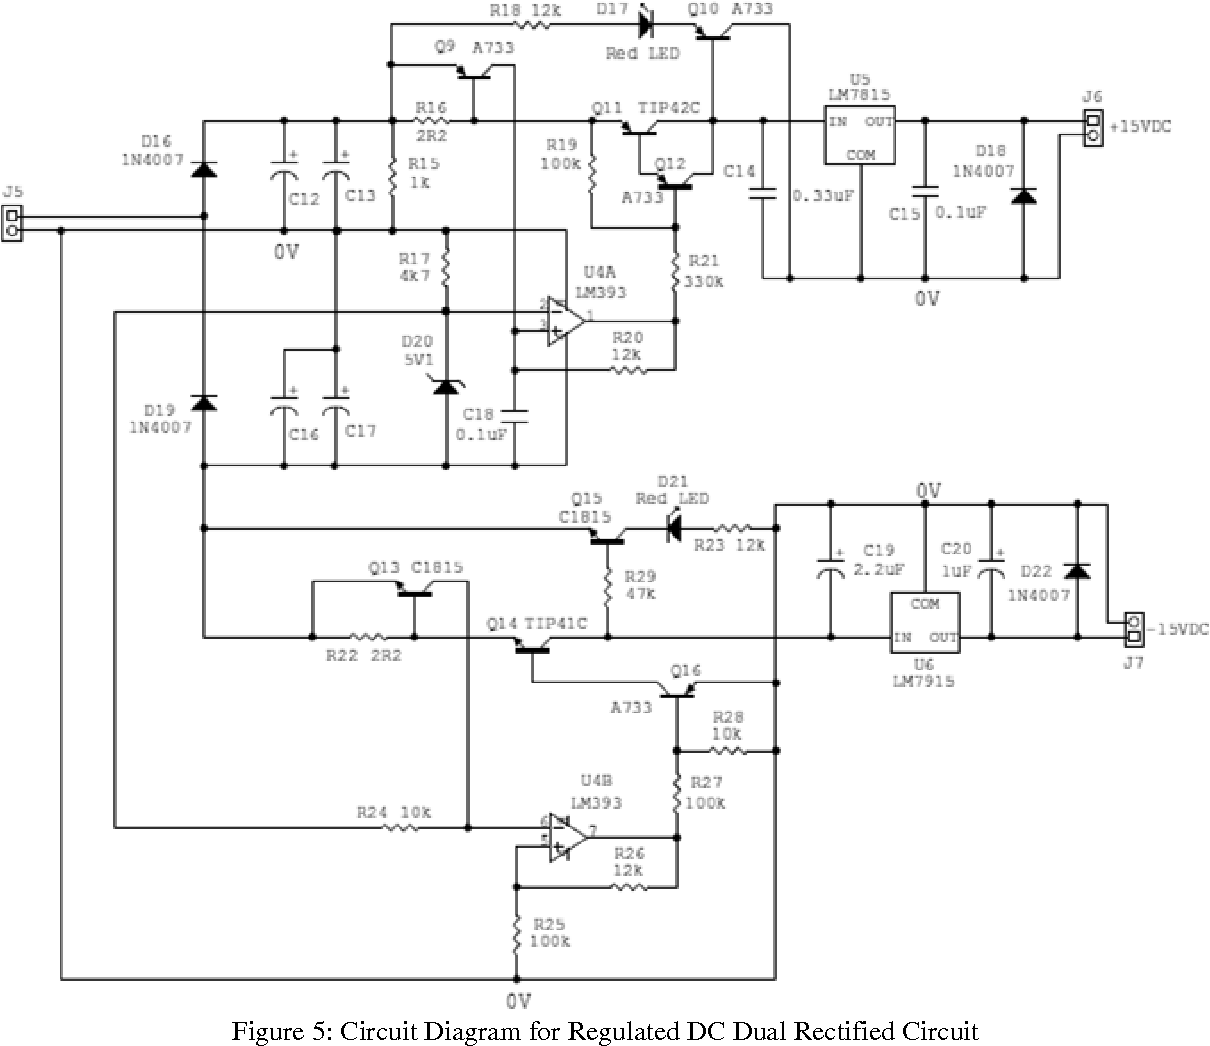 figure 5: circuit diagram for regulated dc dual rectified circuit